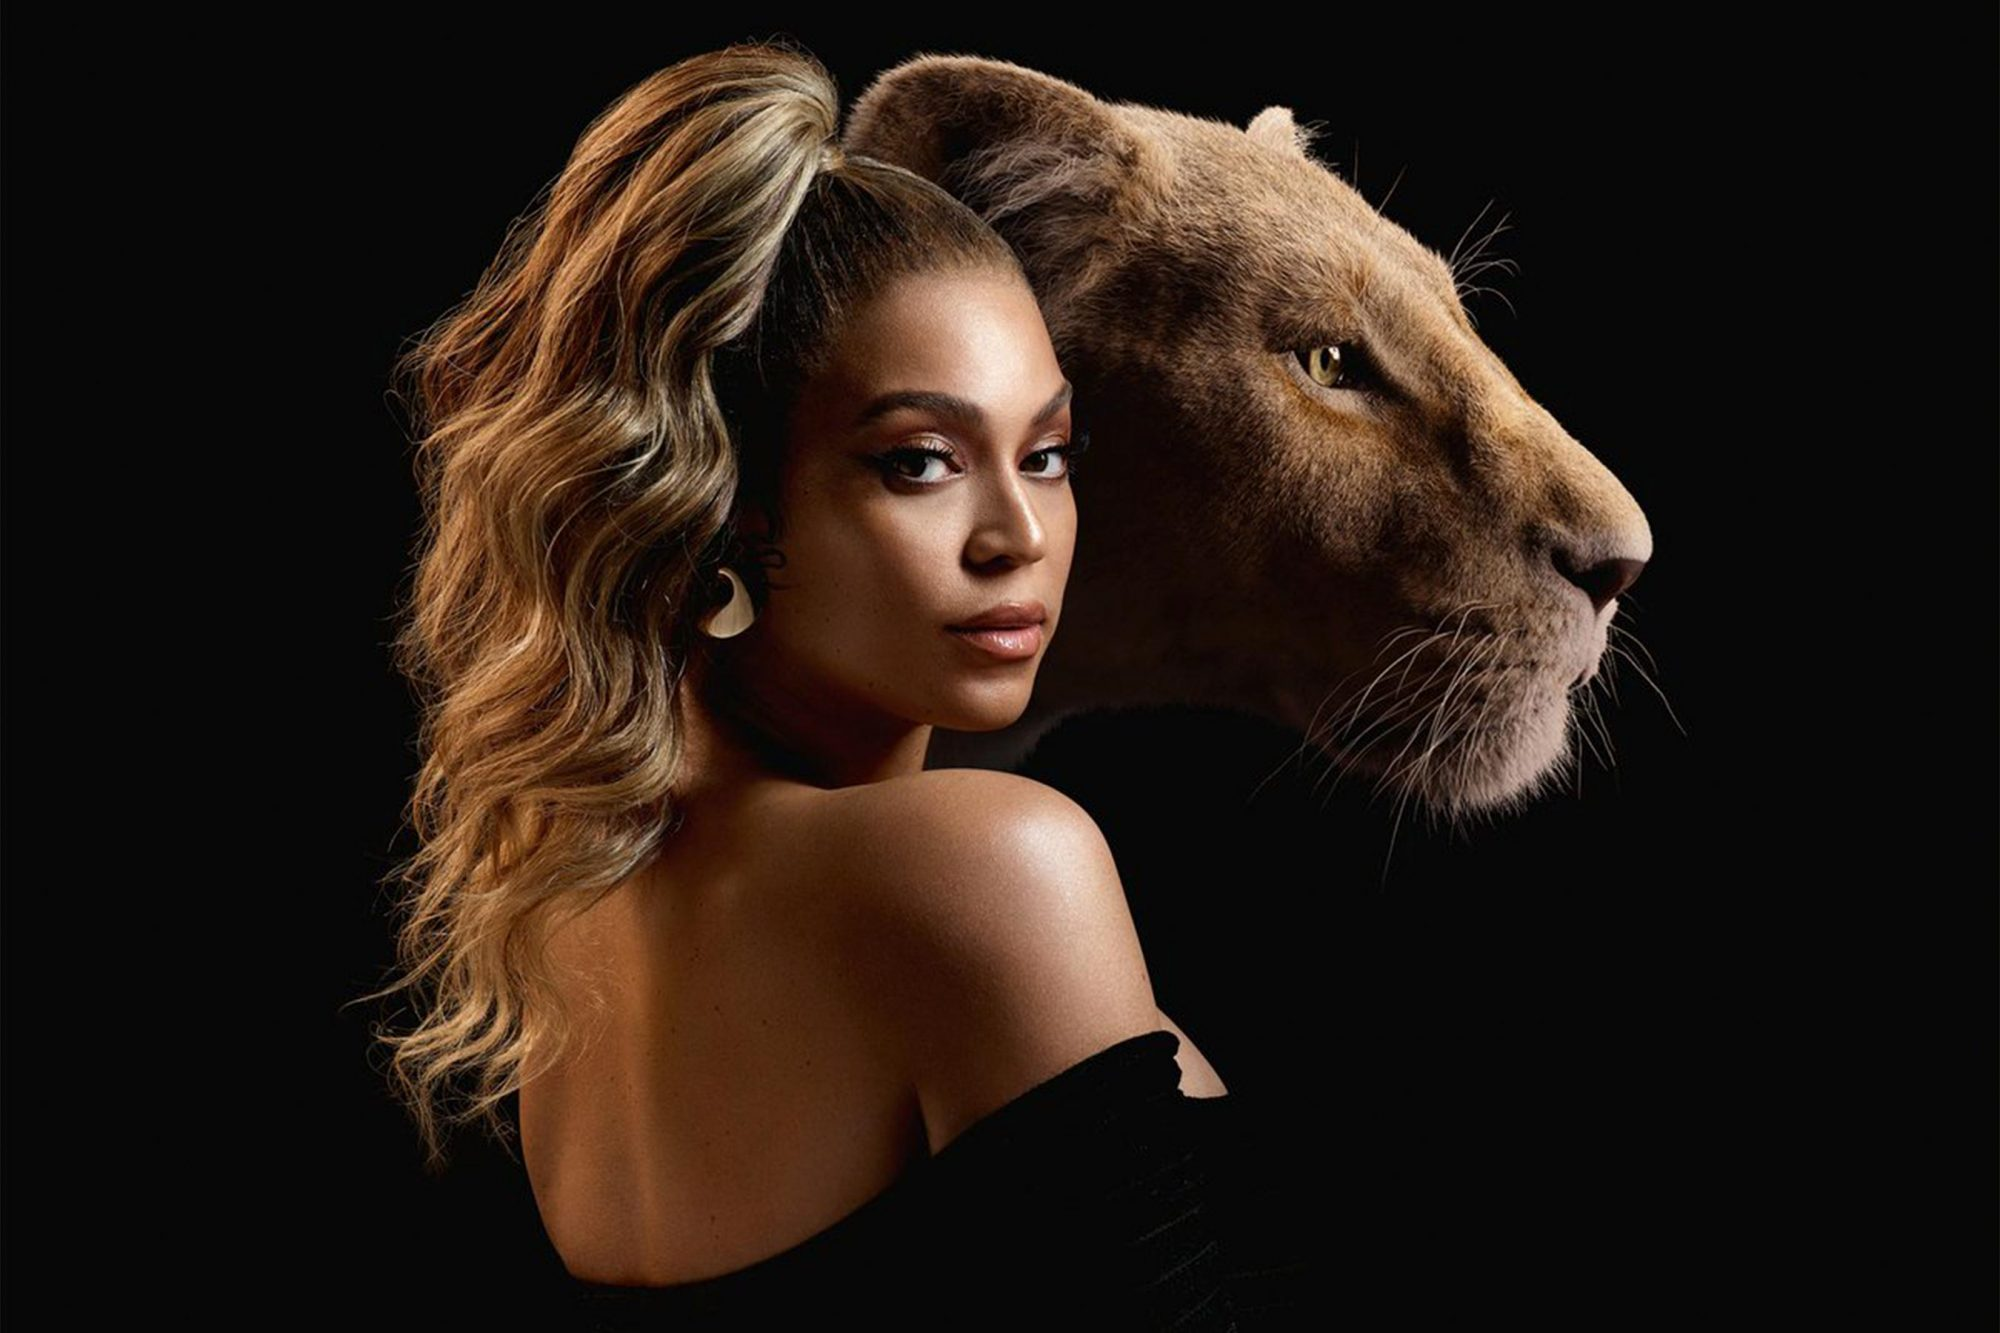 Beyonce S Lion King Album The Gift Tries To Do A Bit Too Much Ew Review Ew Com